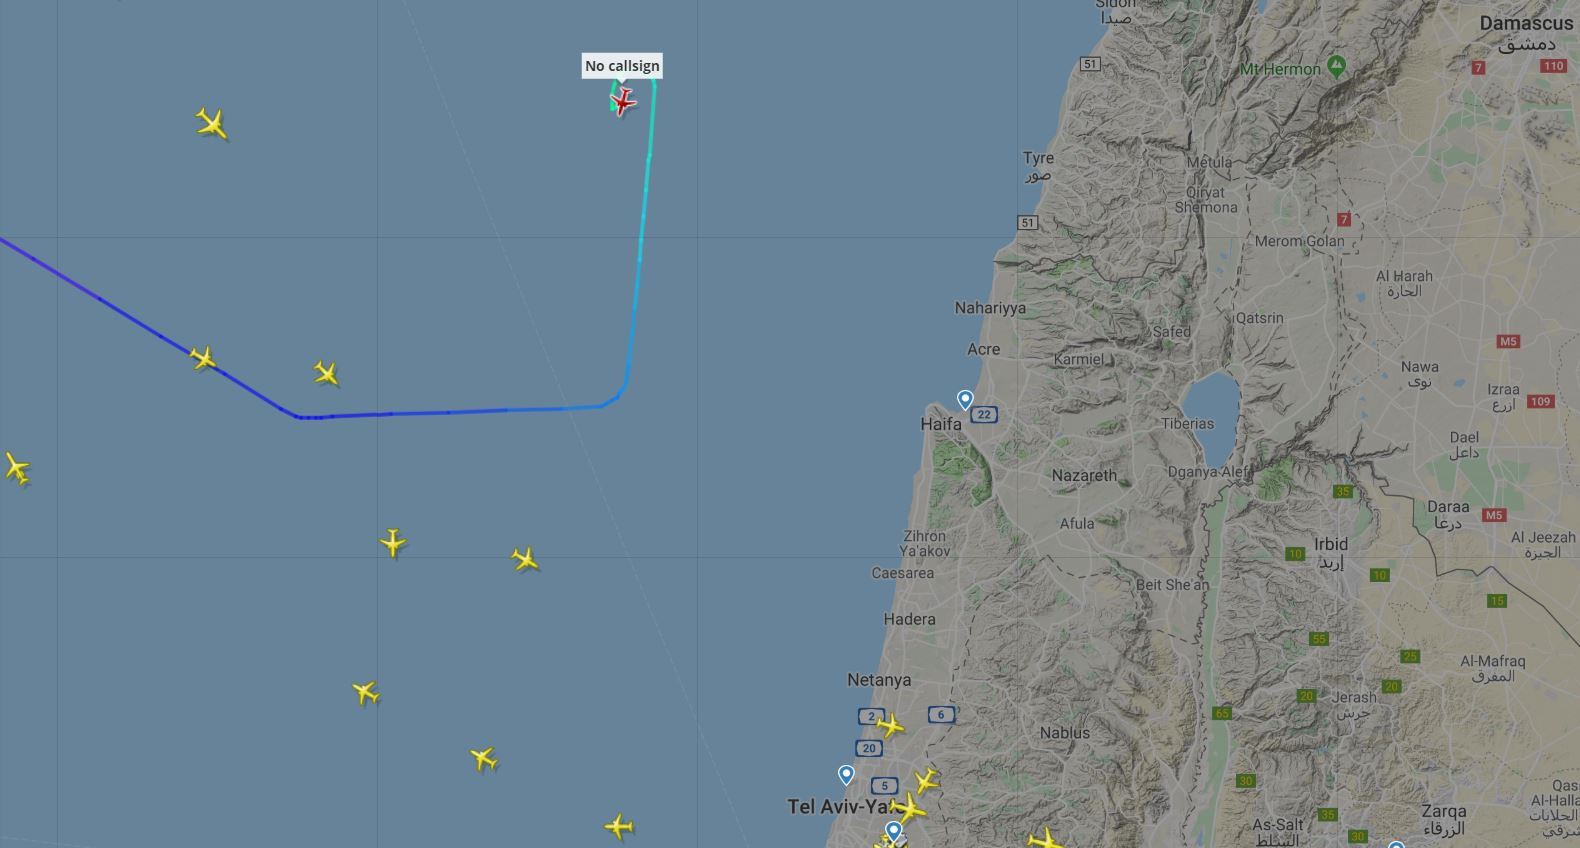 Emergency landing of plane with missing wheel expected at Ben Gurion airport